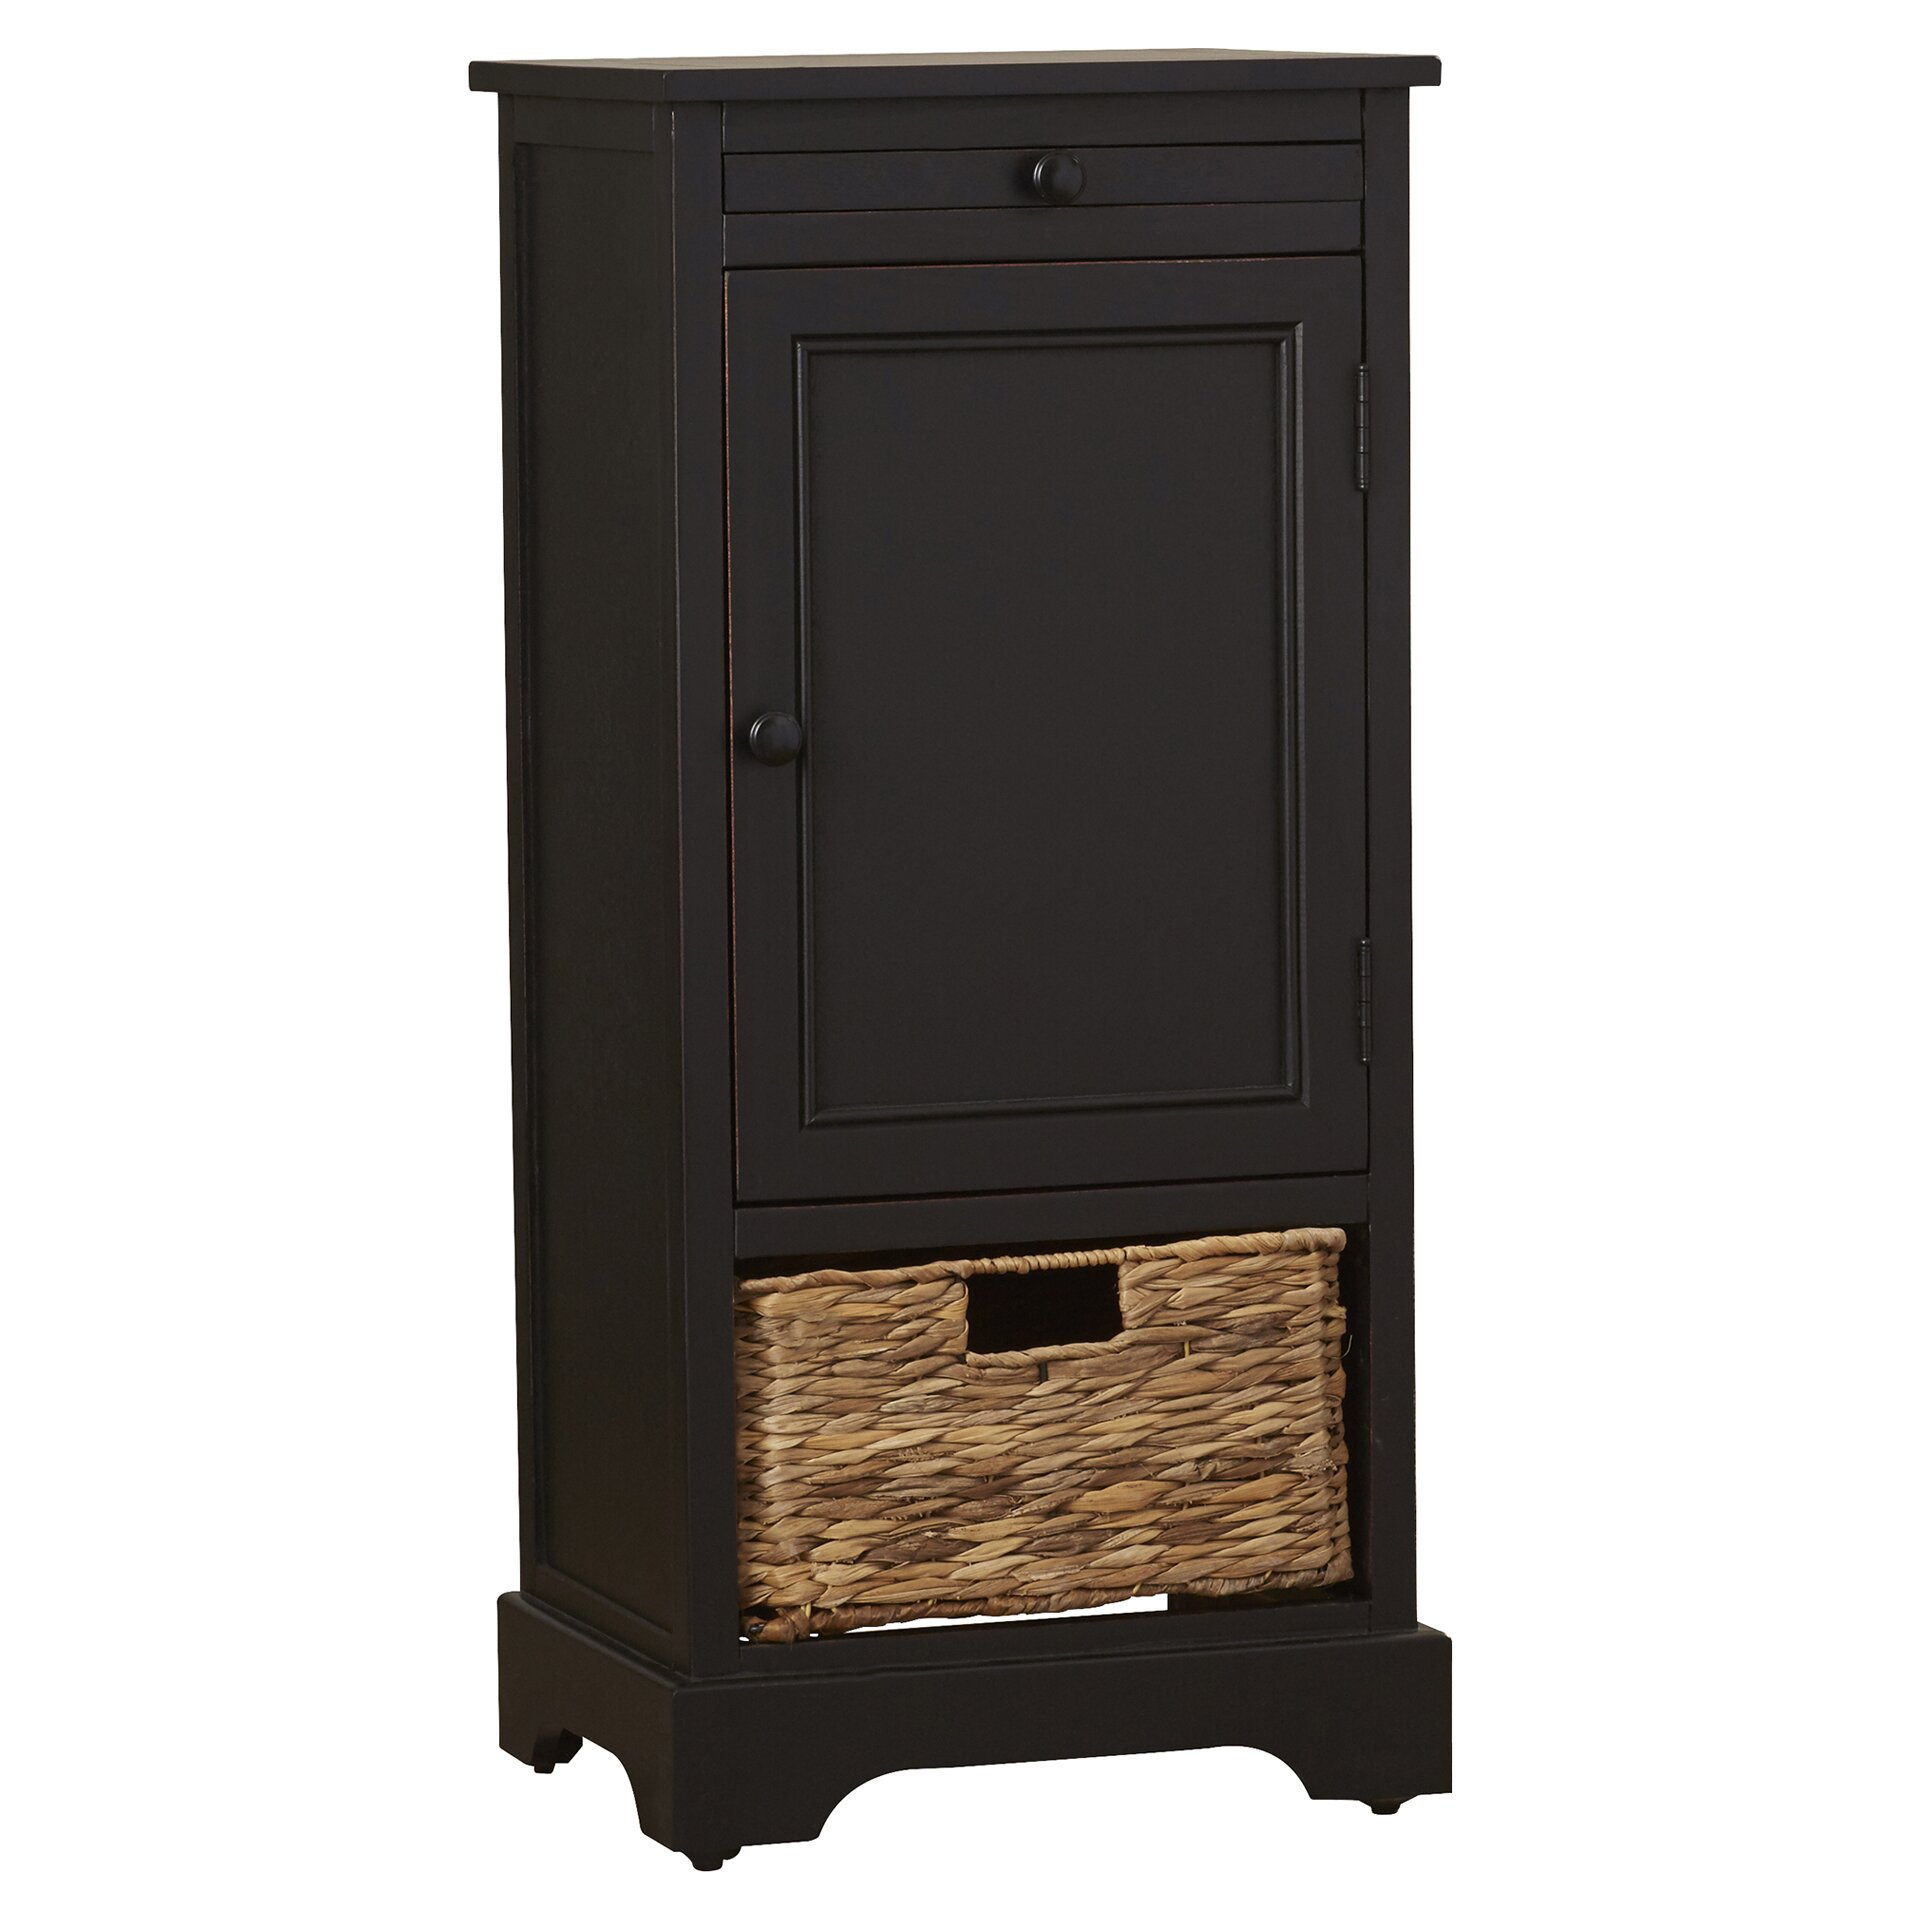 Home Depot Cabinets Review: Beachcrest Home Blaclava 1 Drawer Storage Cabinet